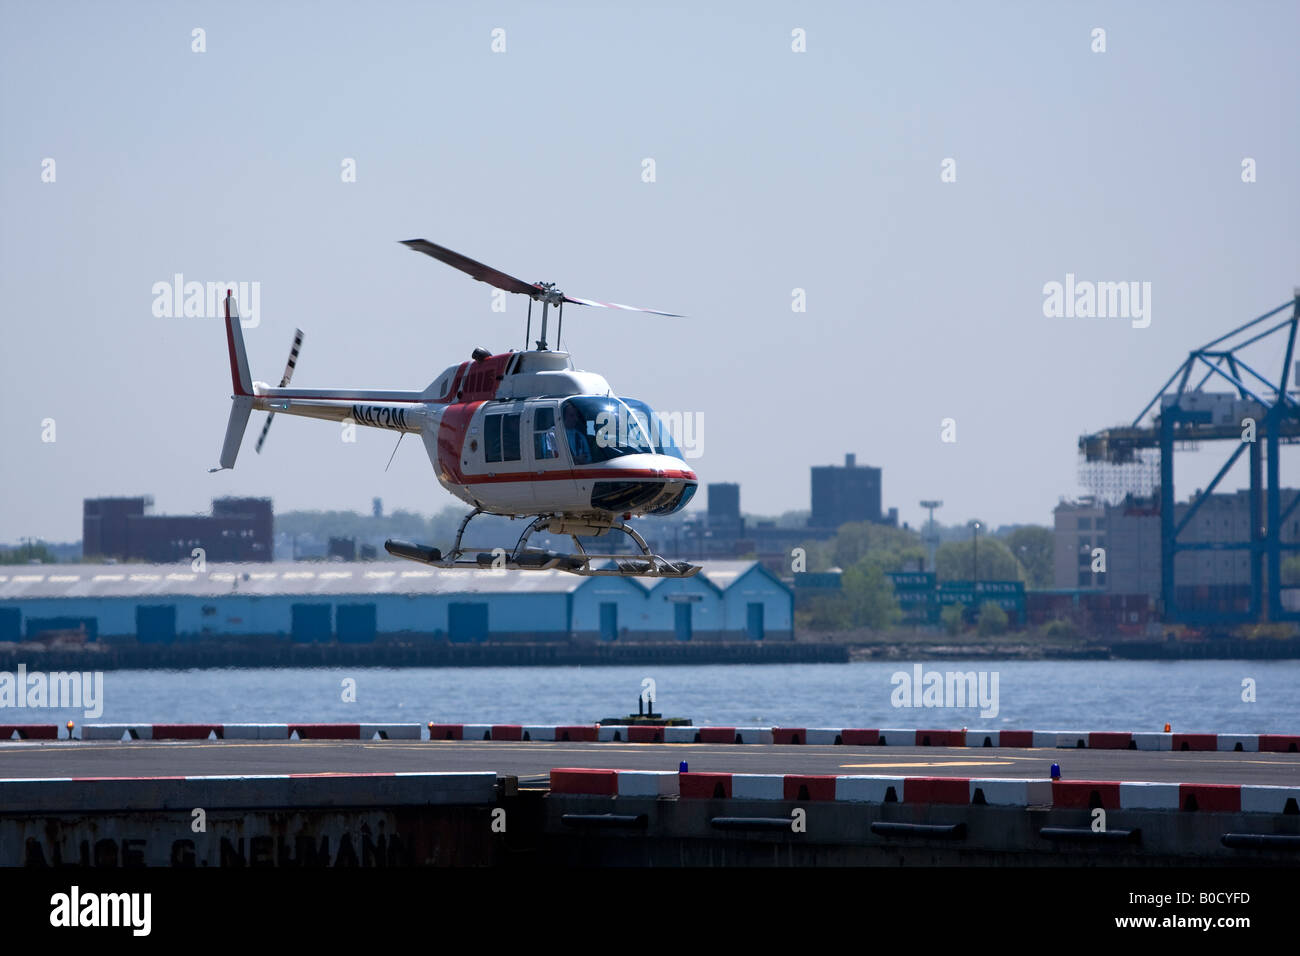 A helicopter landing at a heliport in New York City. - Stock Image